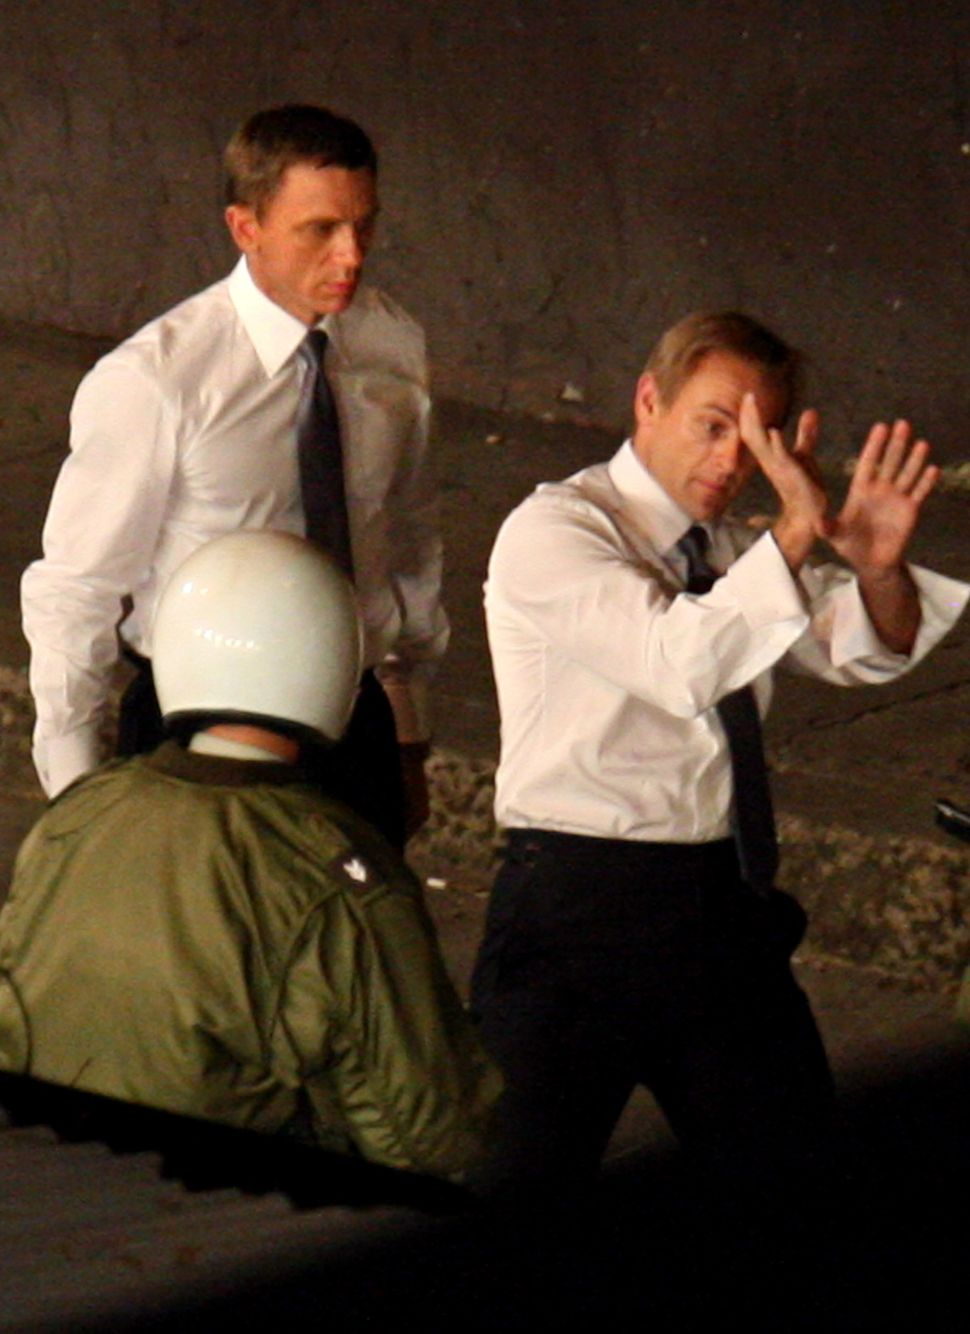 Daniel Craig watches intently as his stunt double went through a fight scene on location in Panama City, Panama during filmin